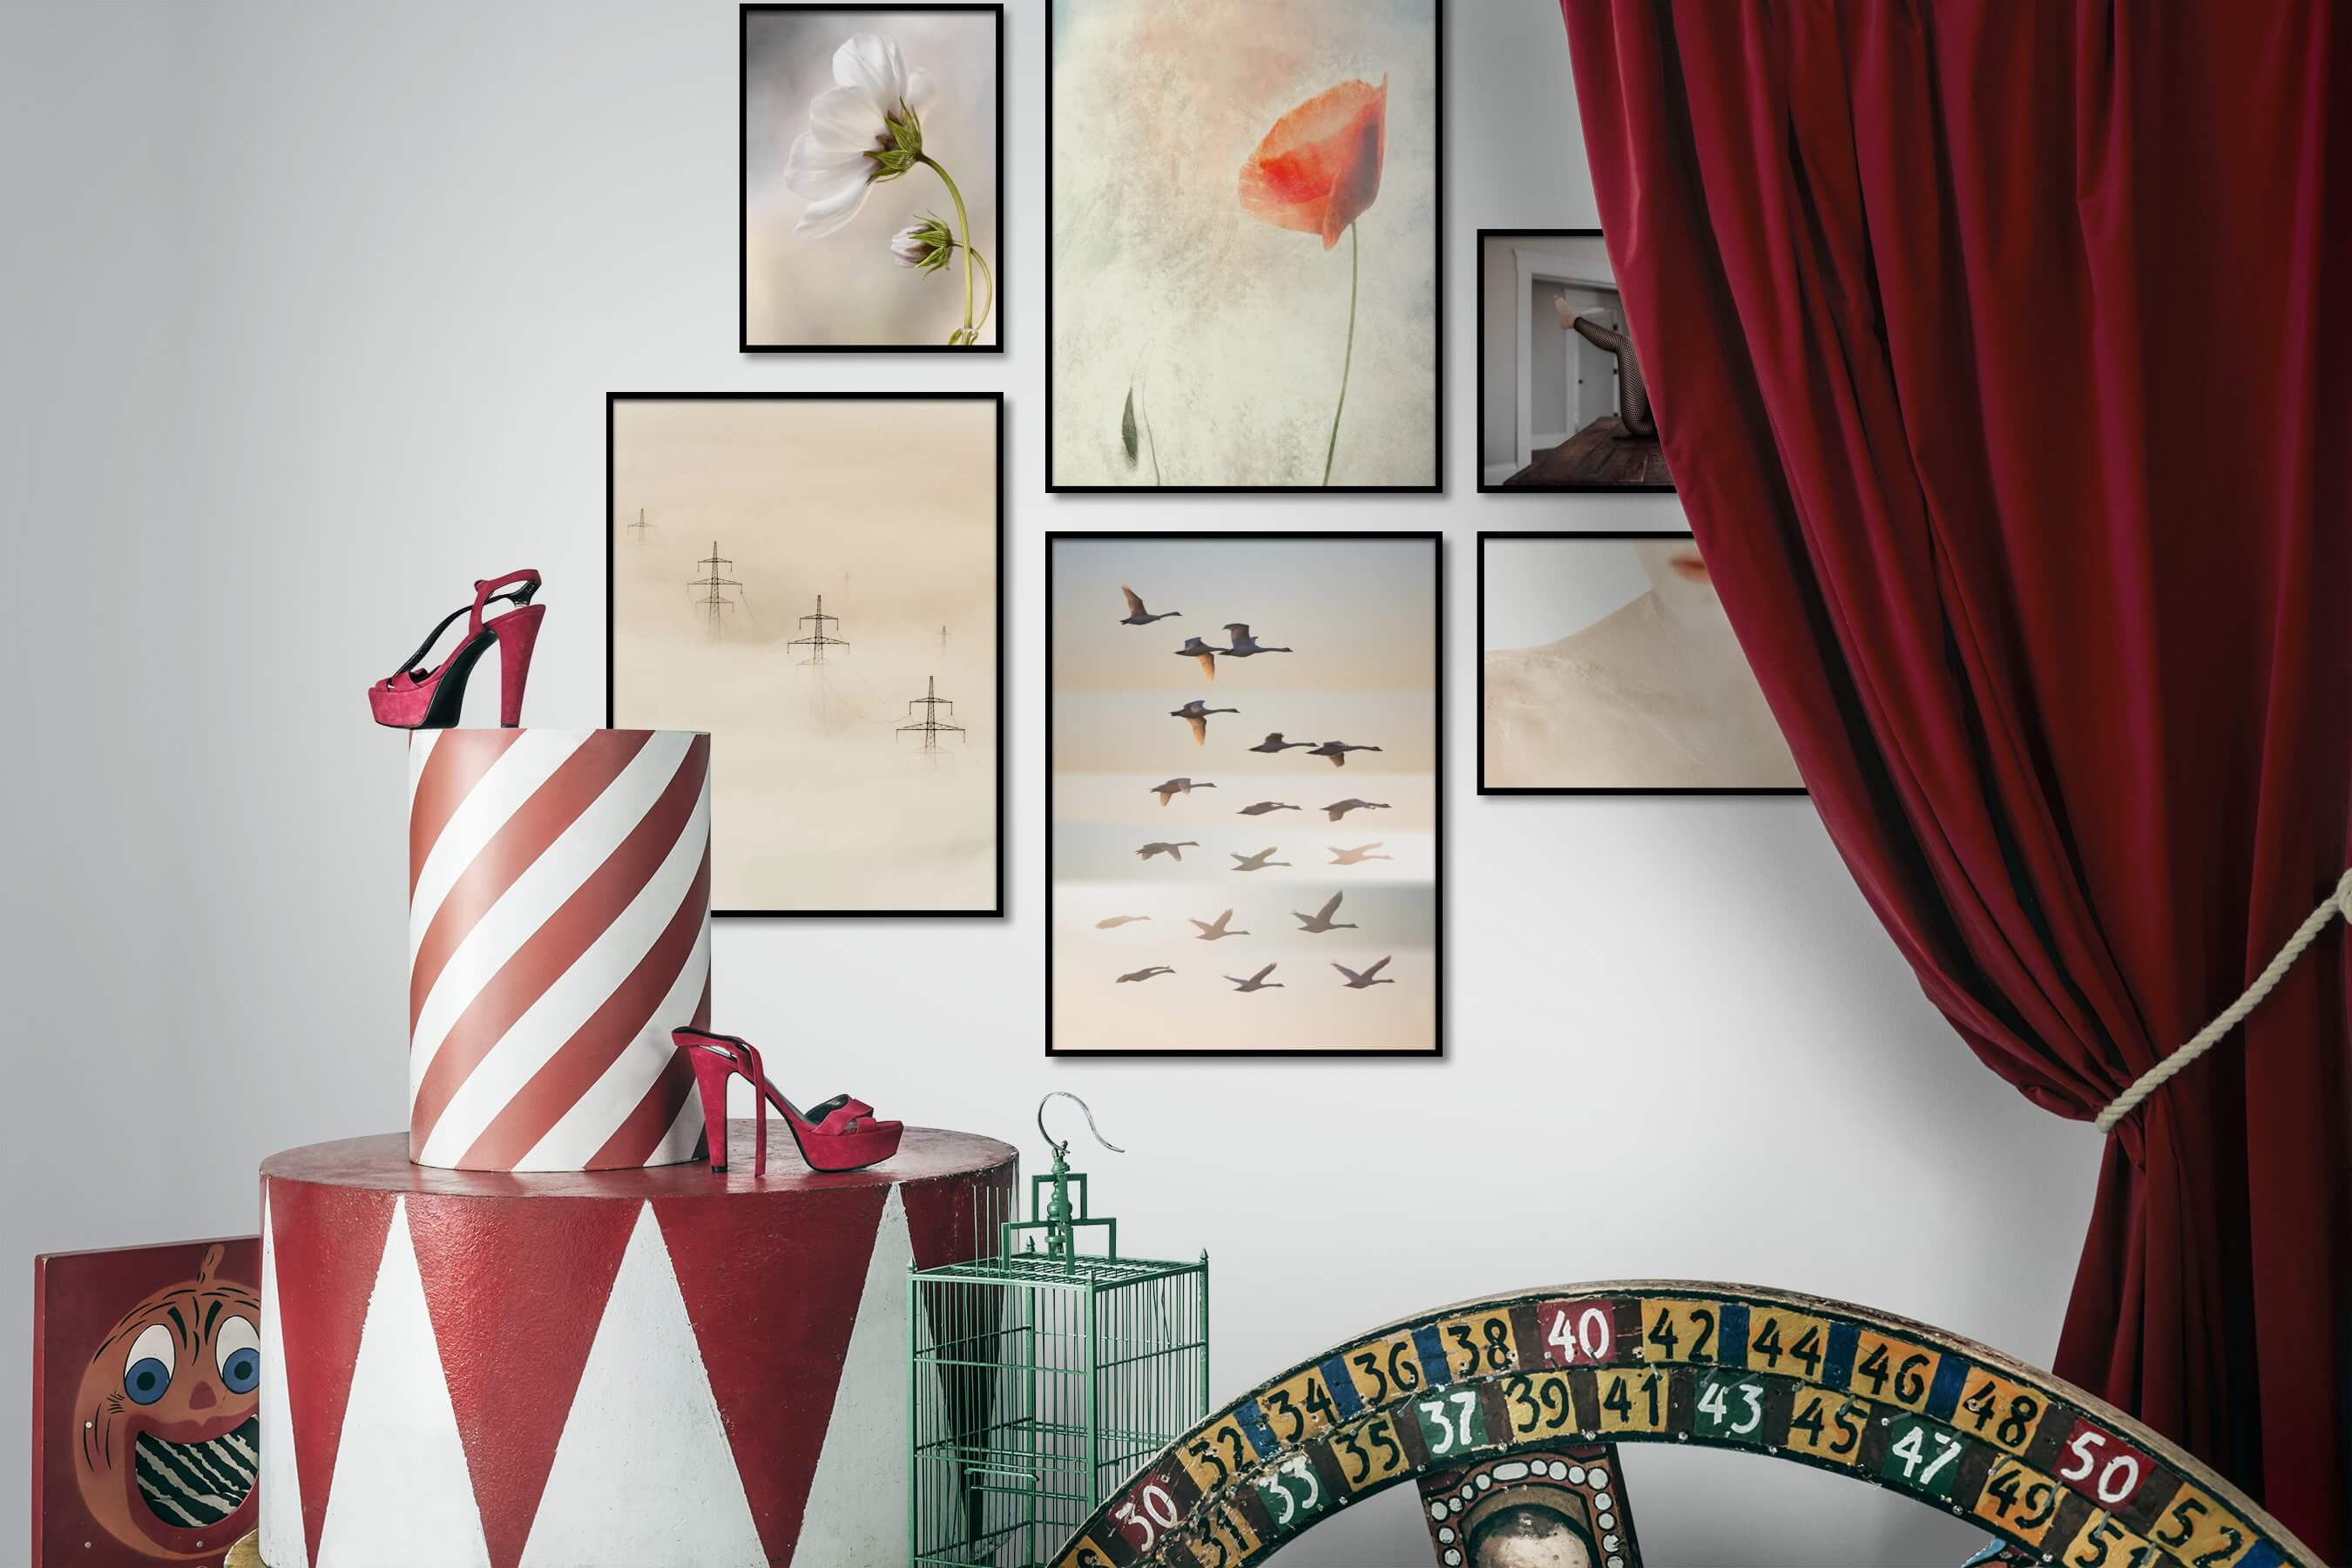 Gallery wall idea with six framed pictures arranged on a wall depicting Flowers & Plants, For the Minimalist, Vintage, Animals, and Fashion & Beauty